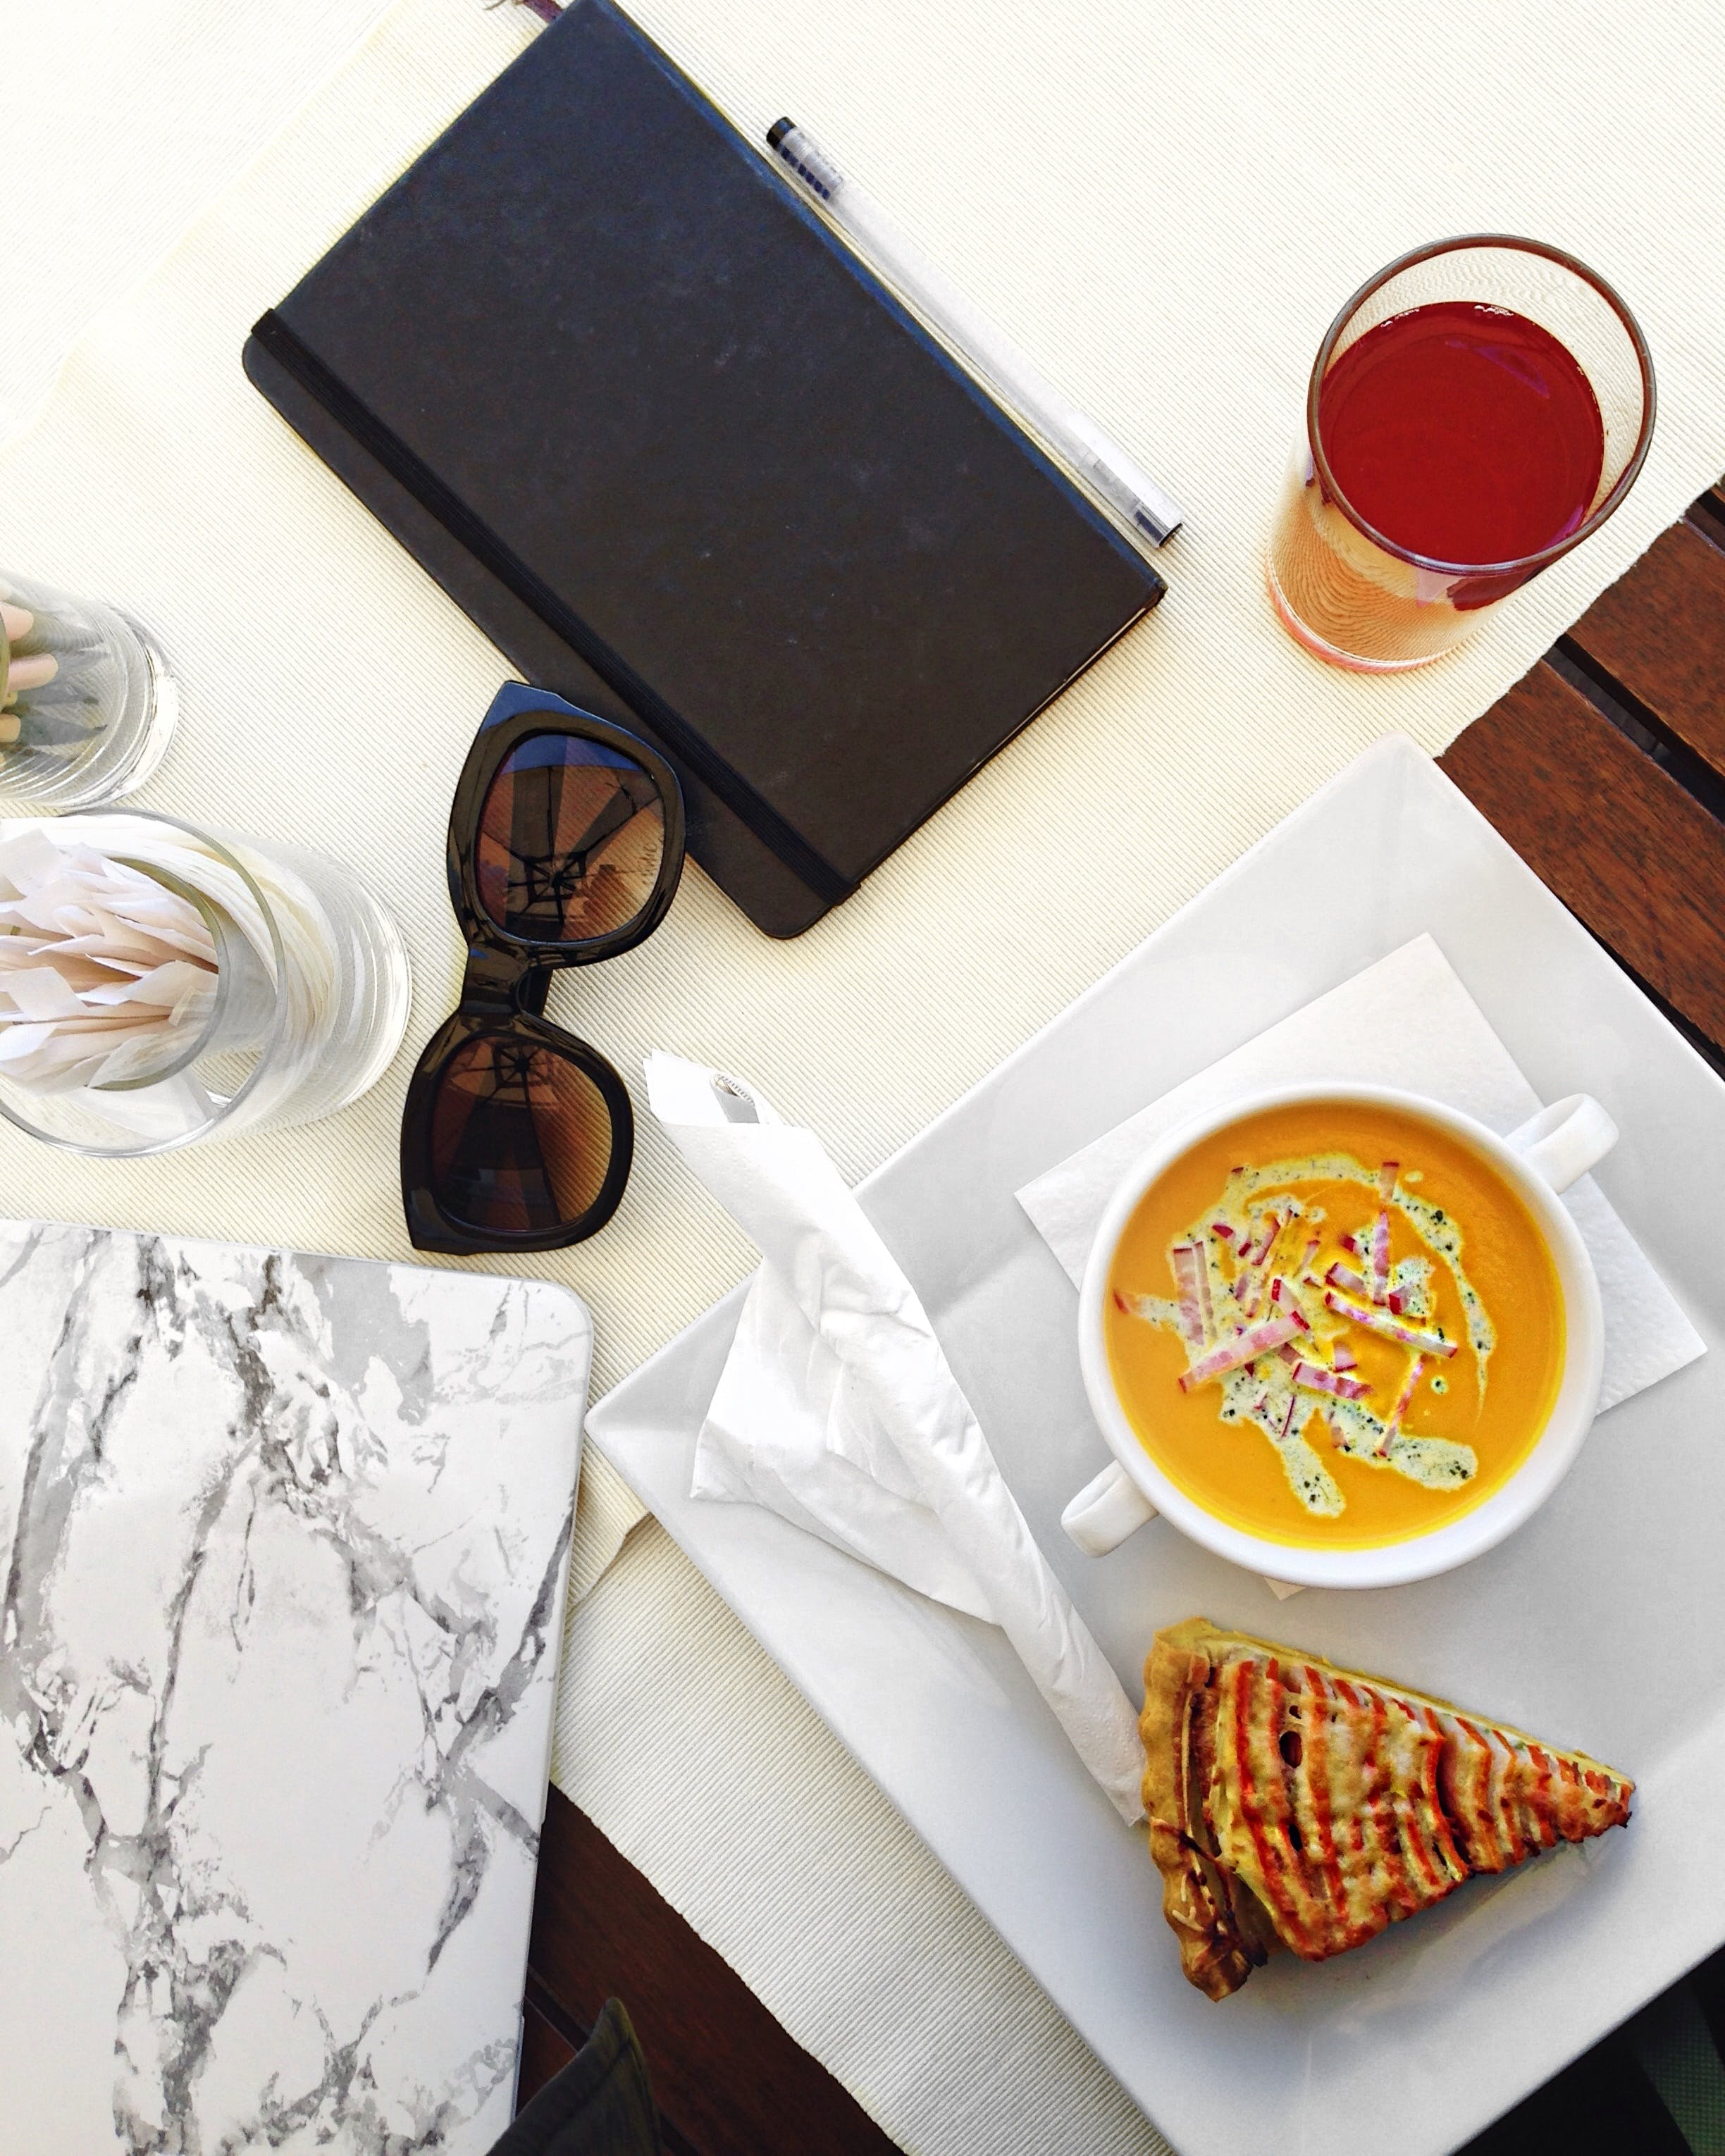 Free stock photo of food, cup, laptop, drink